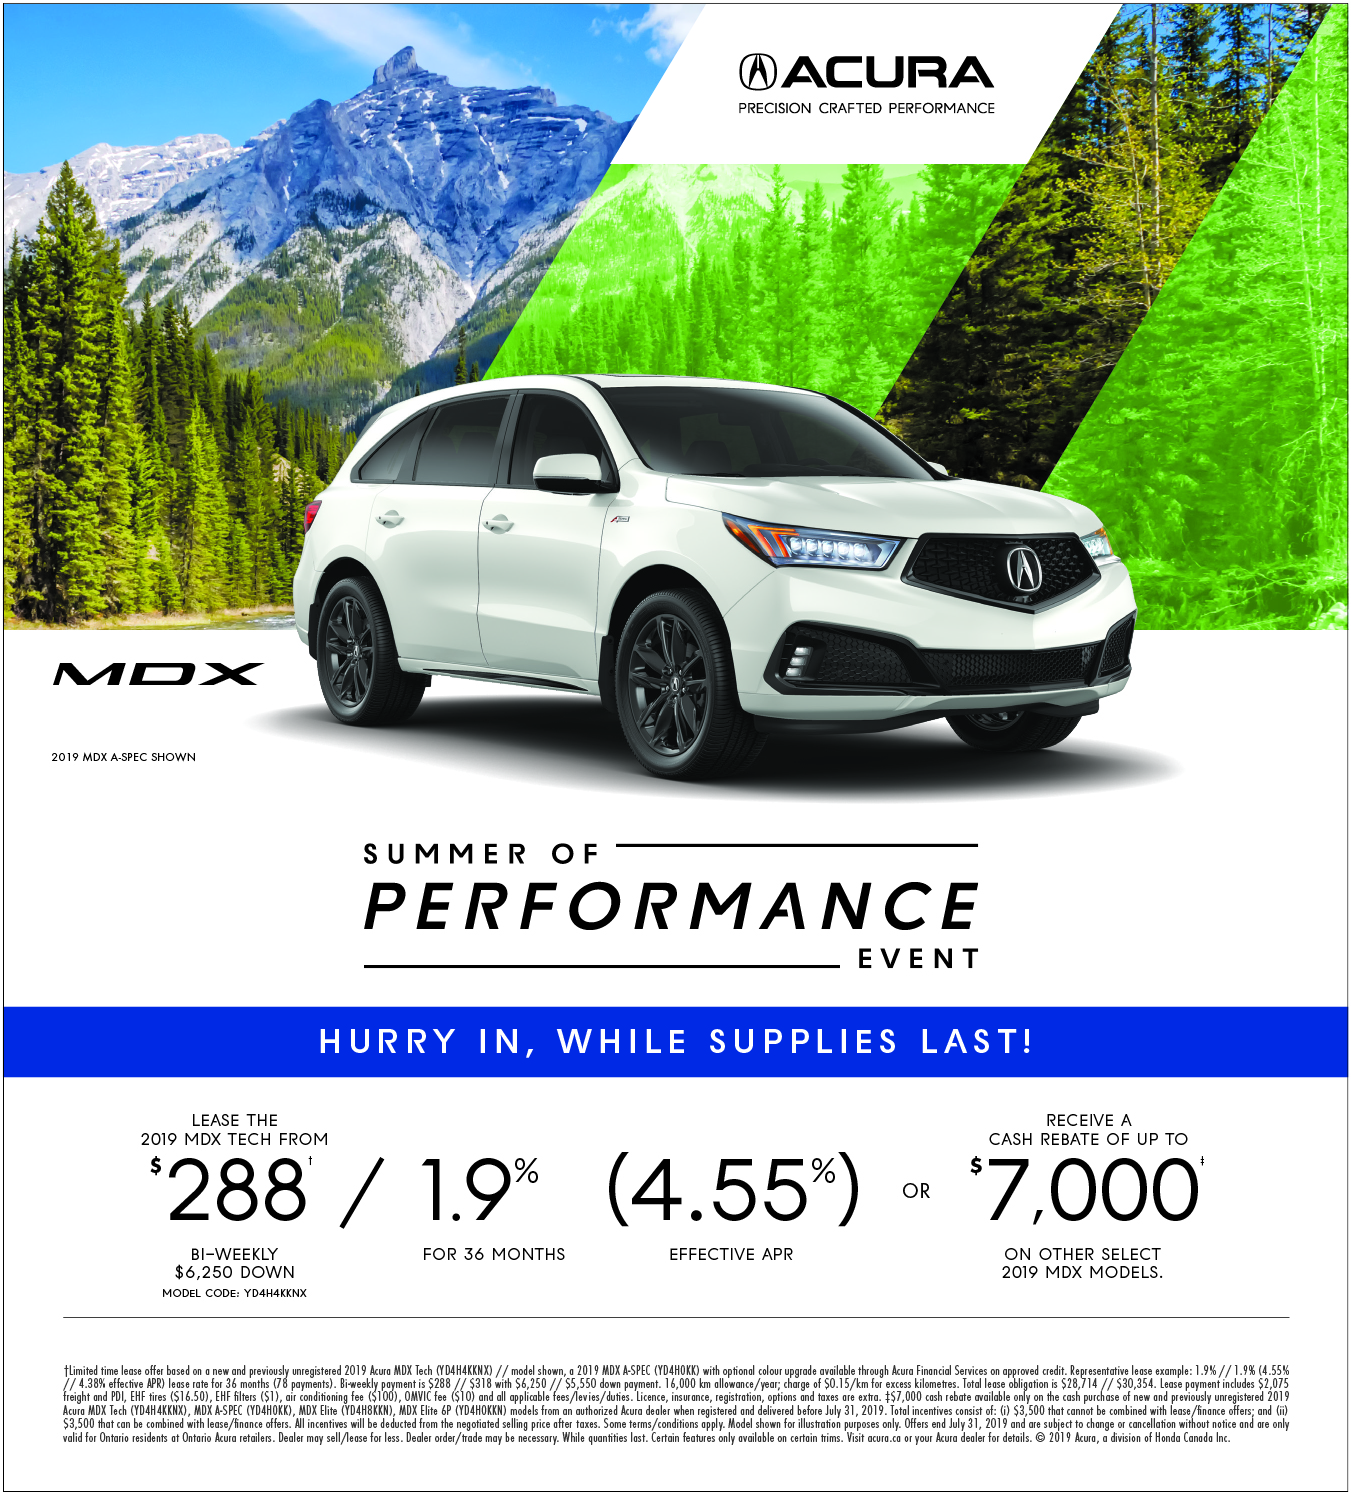 2019 Acura MDX | Summer of Performance Event